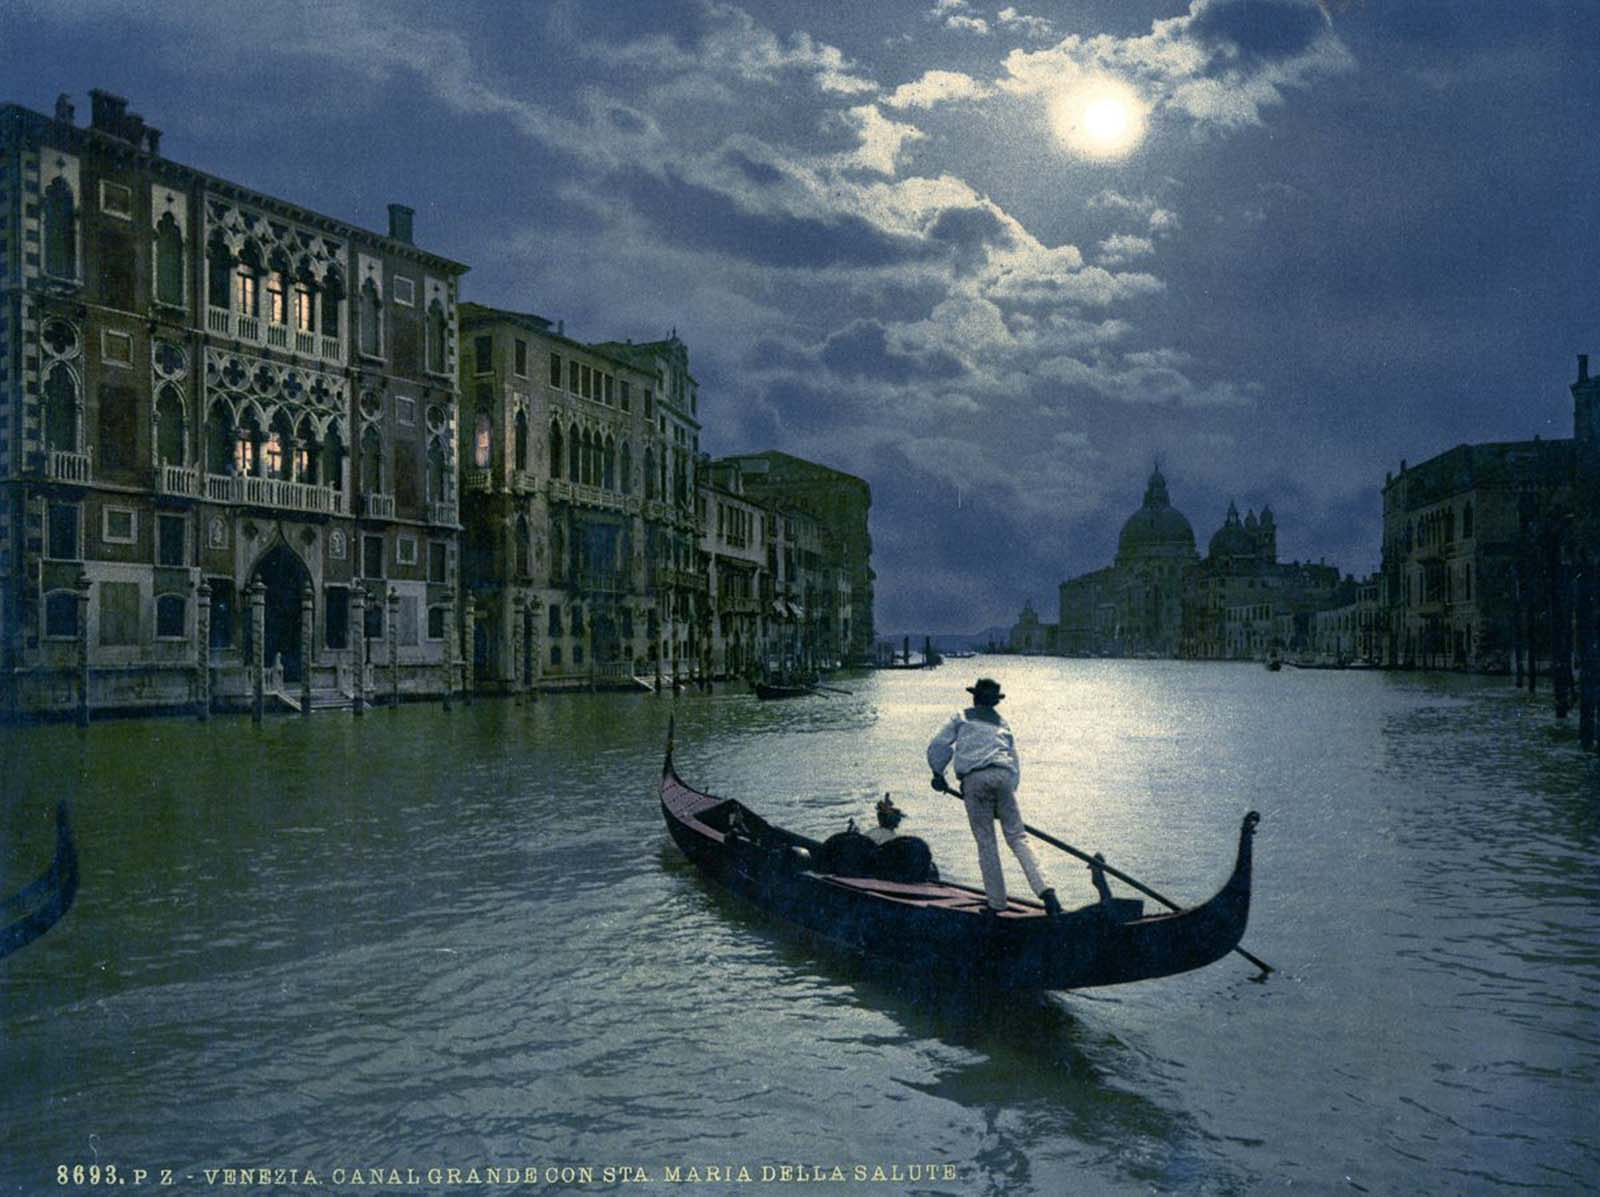 The Grand Canal by moonlight.